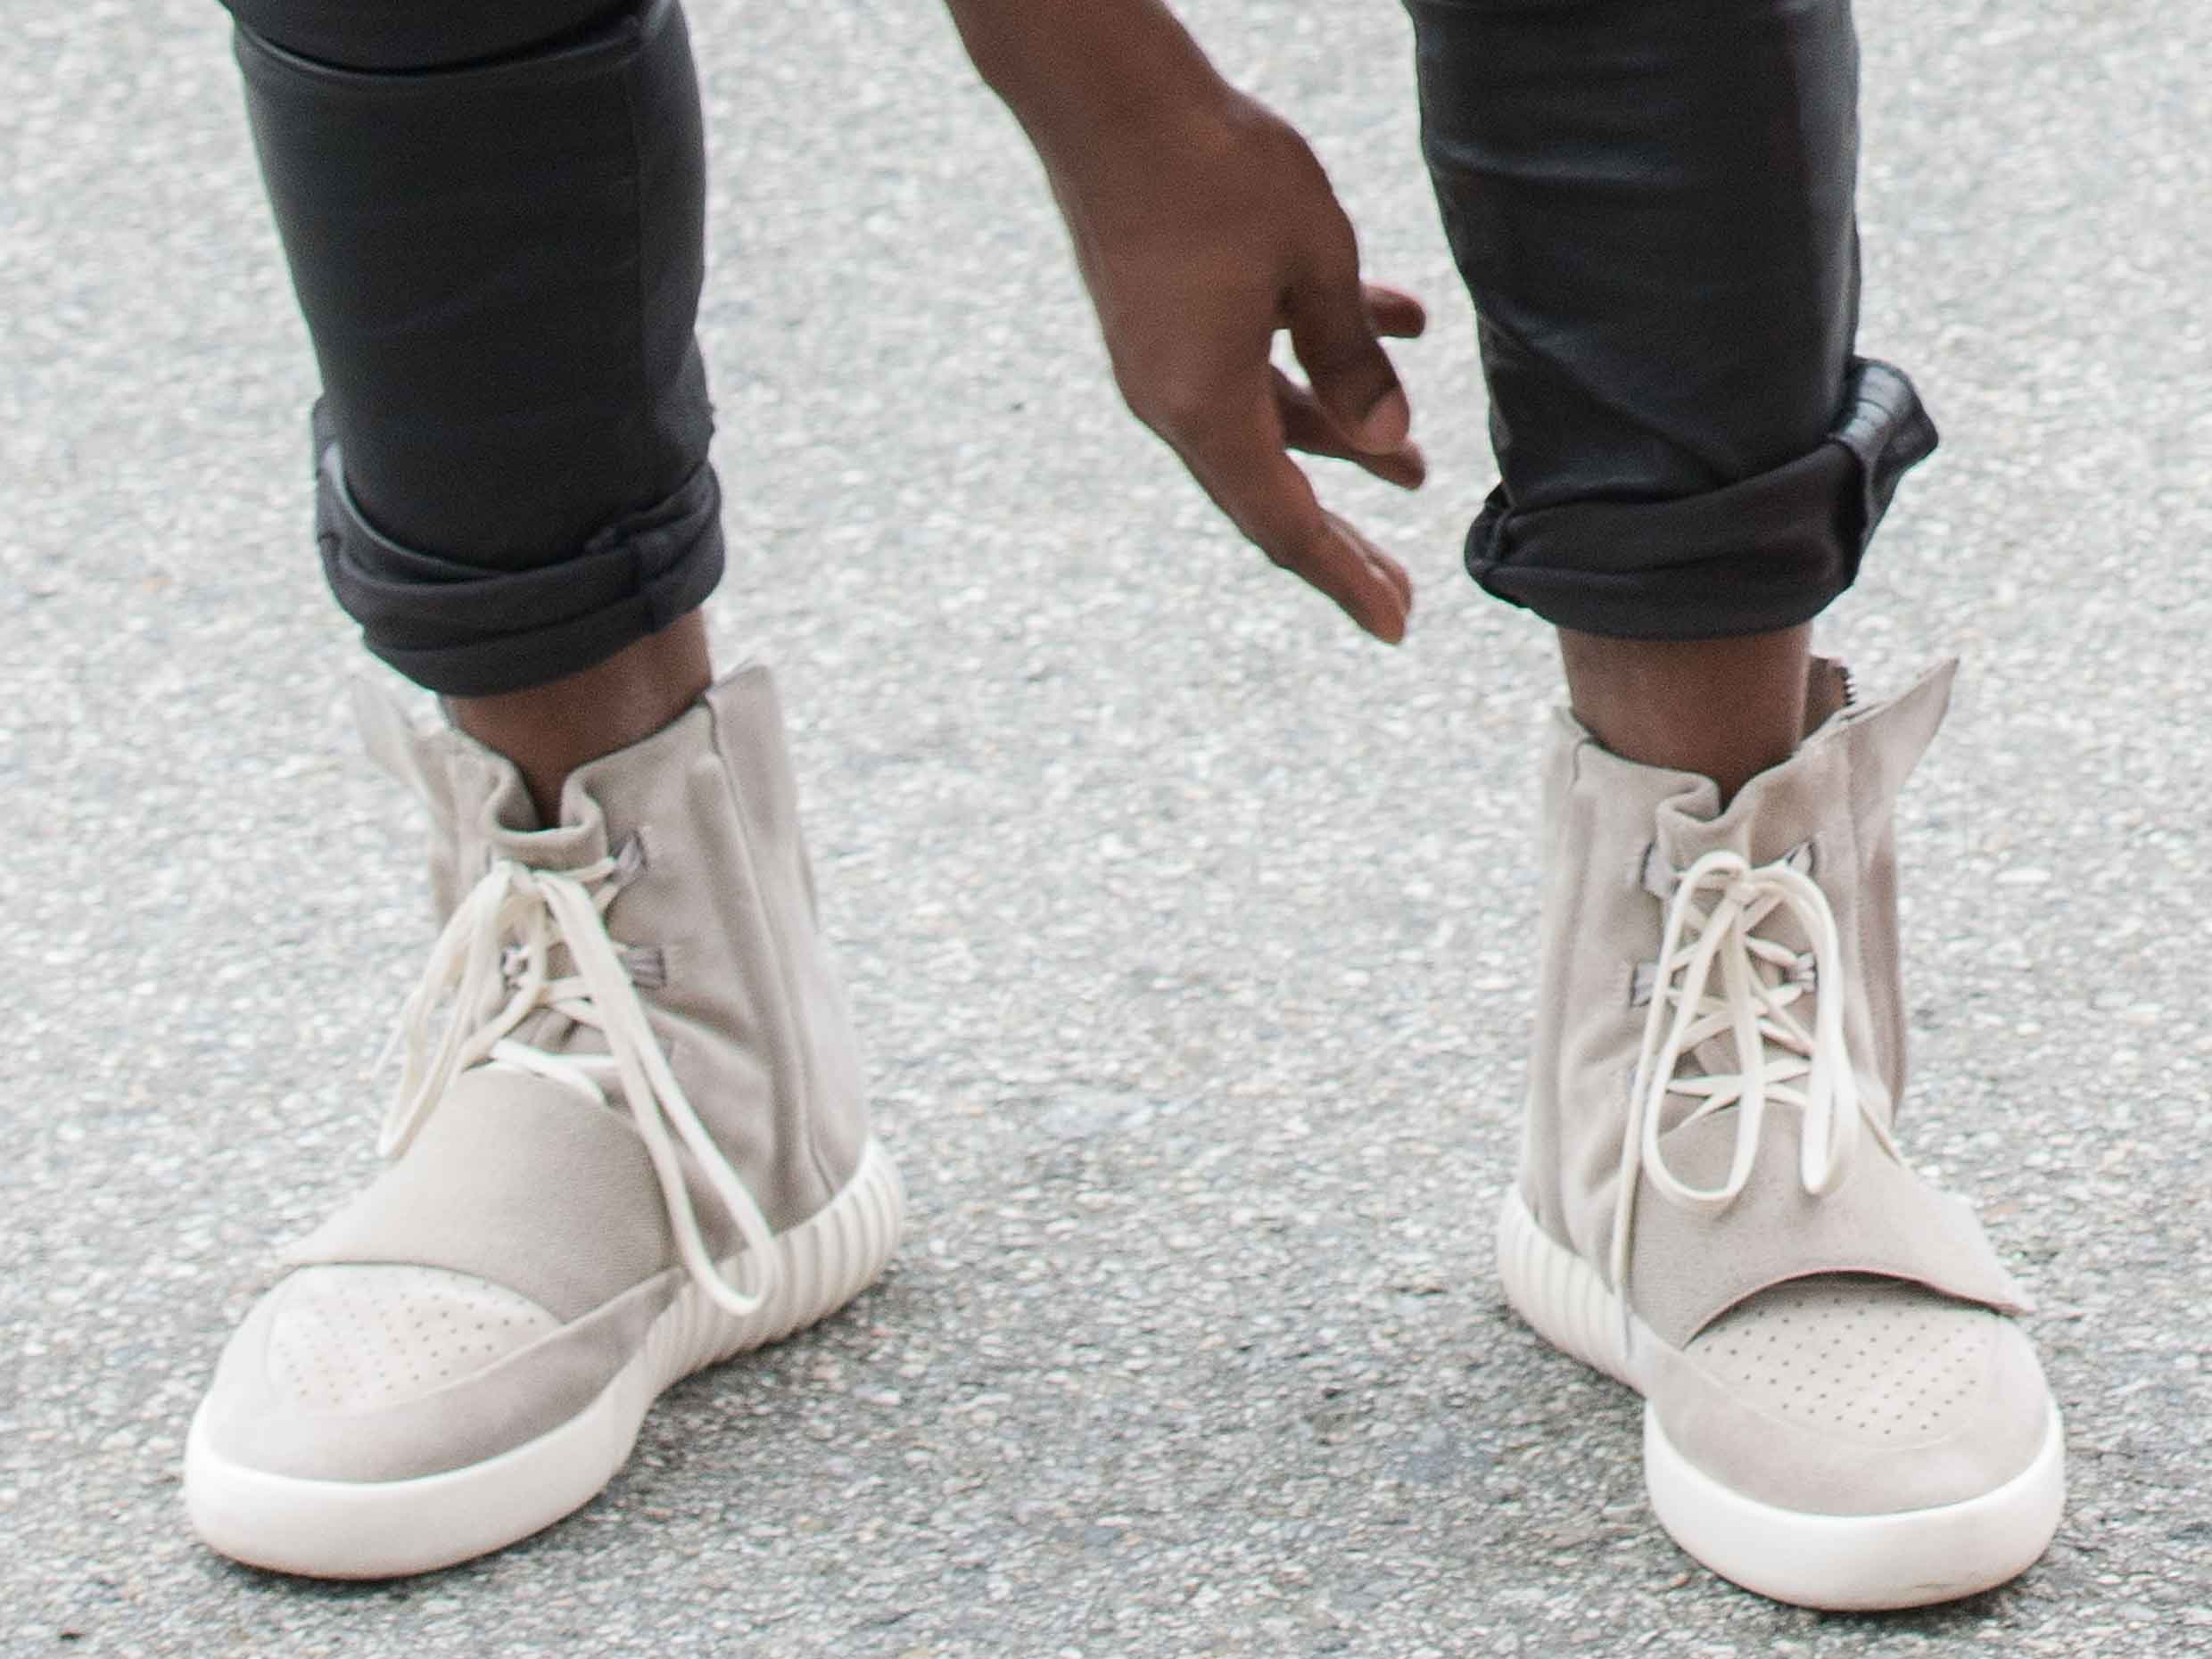 promo code 4a37a 40f0f Kanye West's Yeezy Boost trainers: All you need to know ...